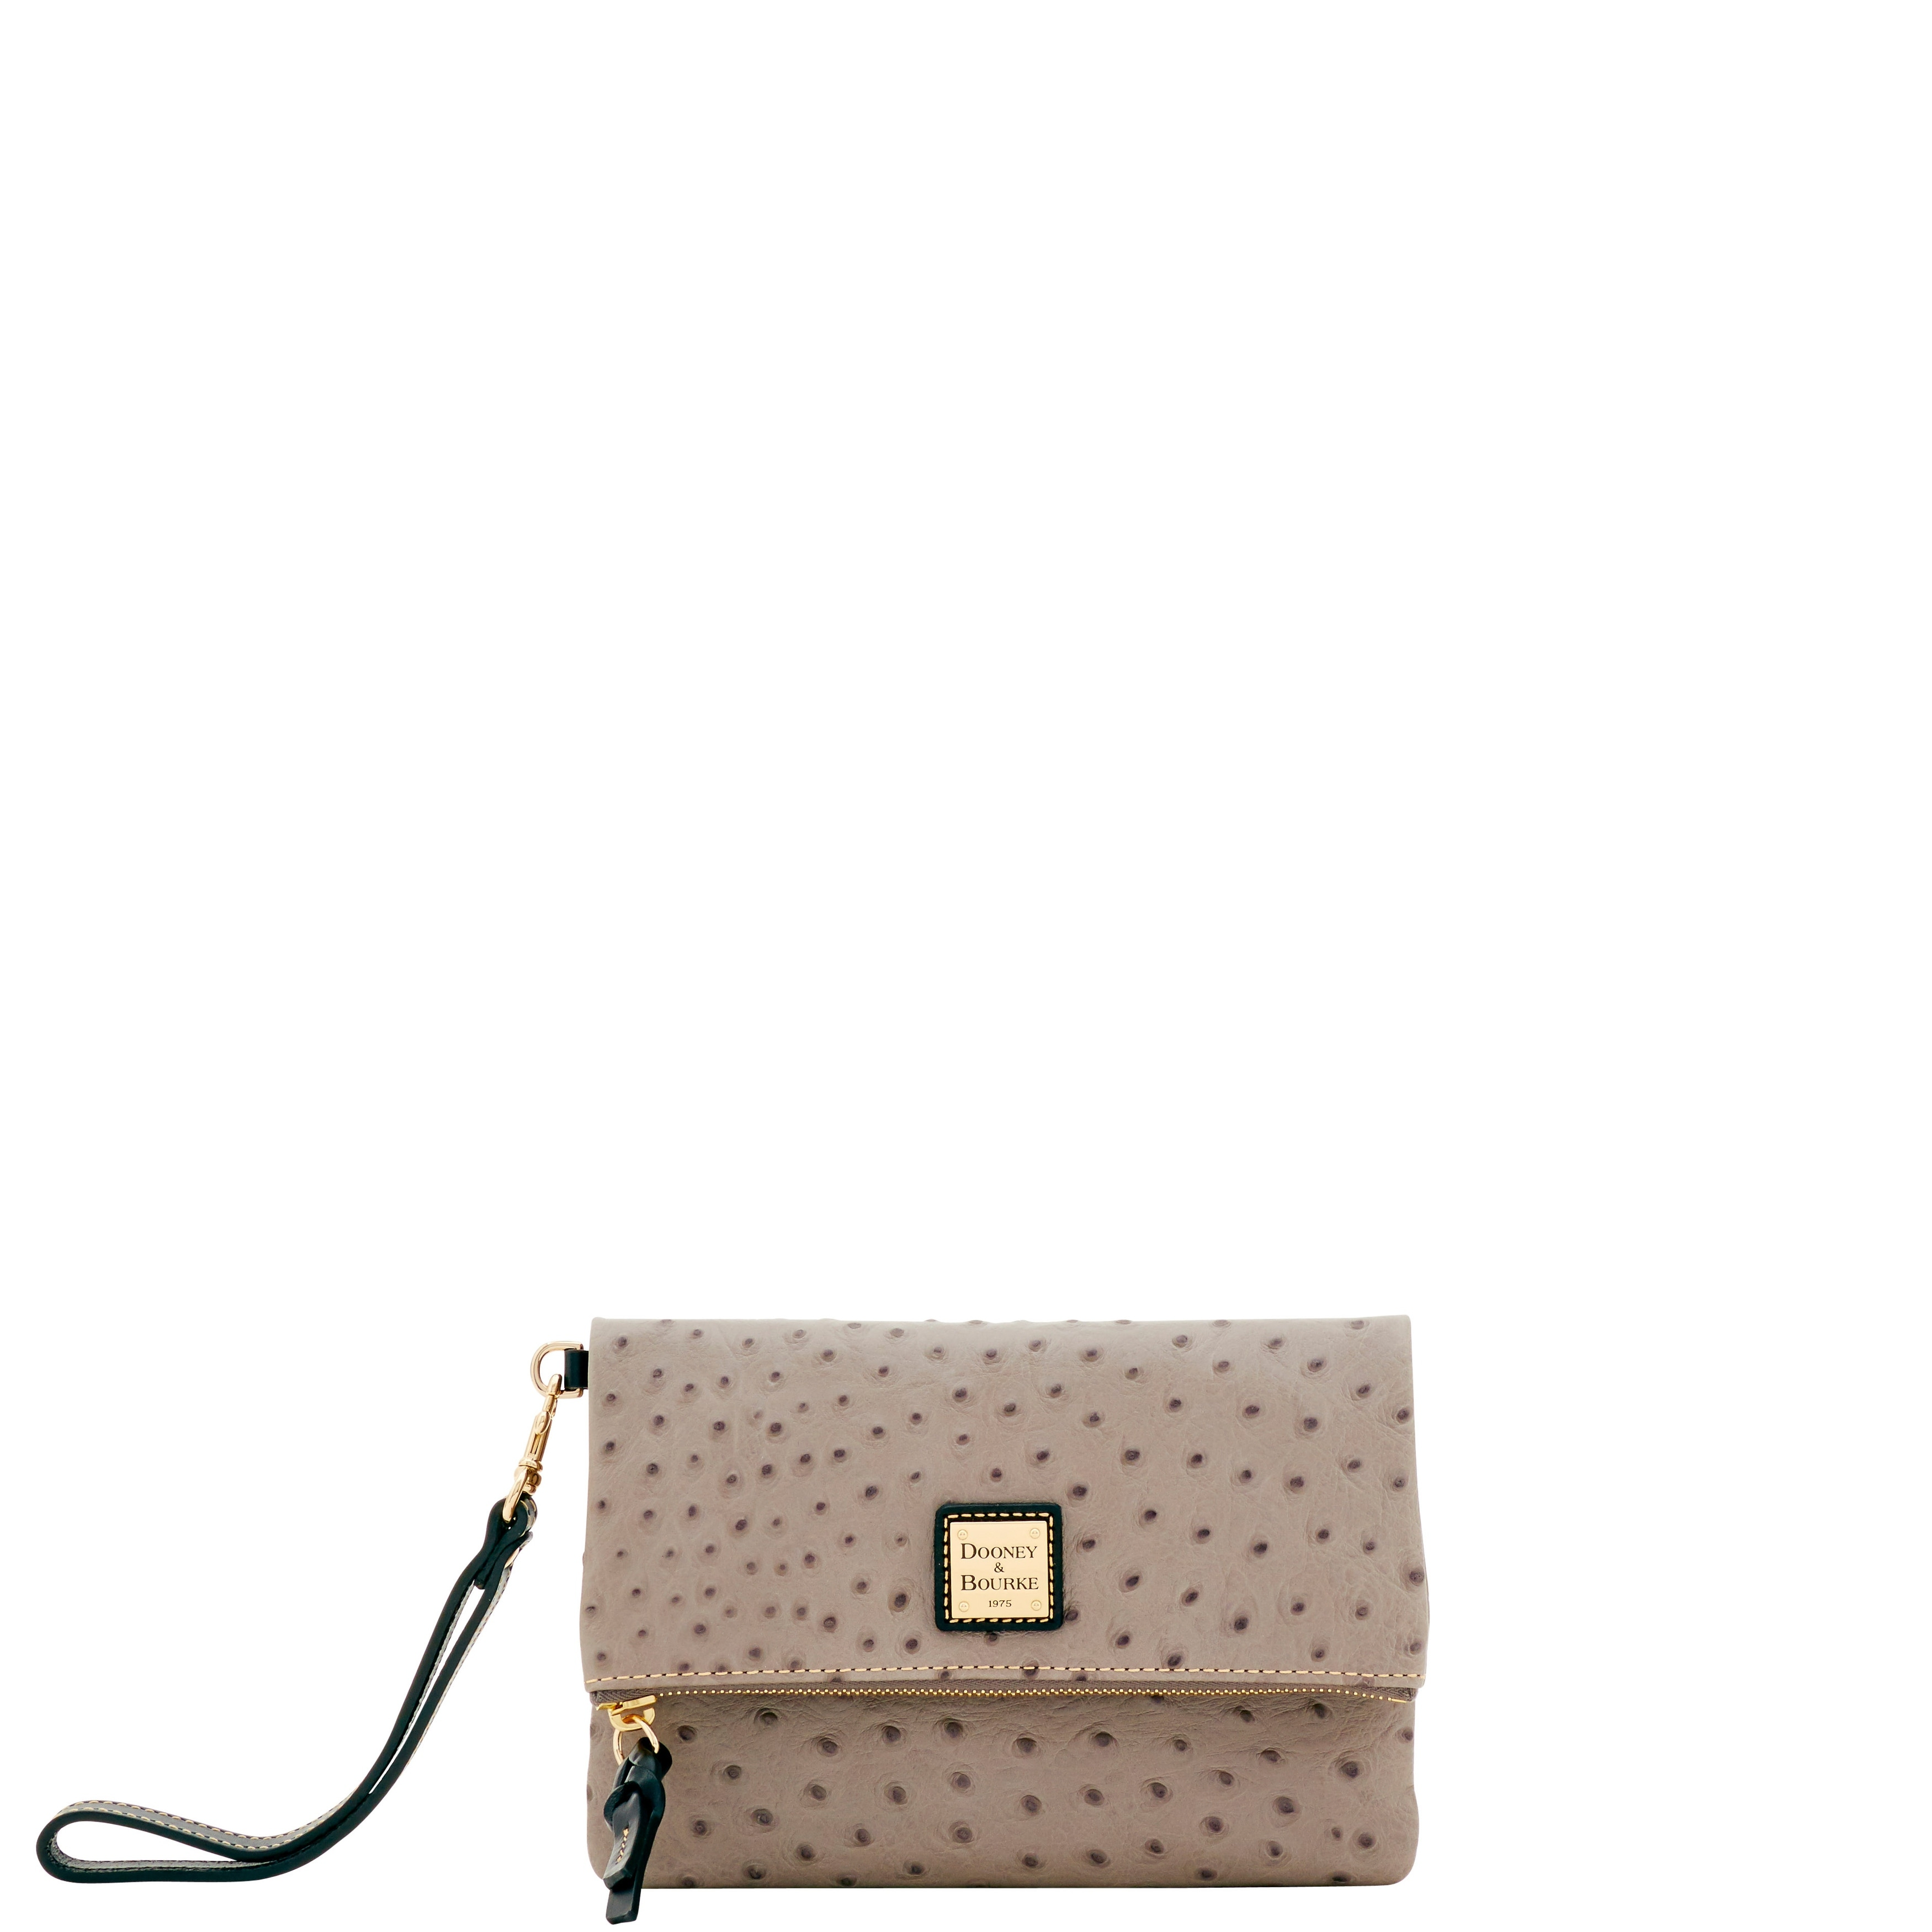 b509211687a4 Dooney & Bourke Ostrich Embossed Leather Foldover Wallet (Introduced by  Dooney & Bourke at $118 in May 2017)